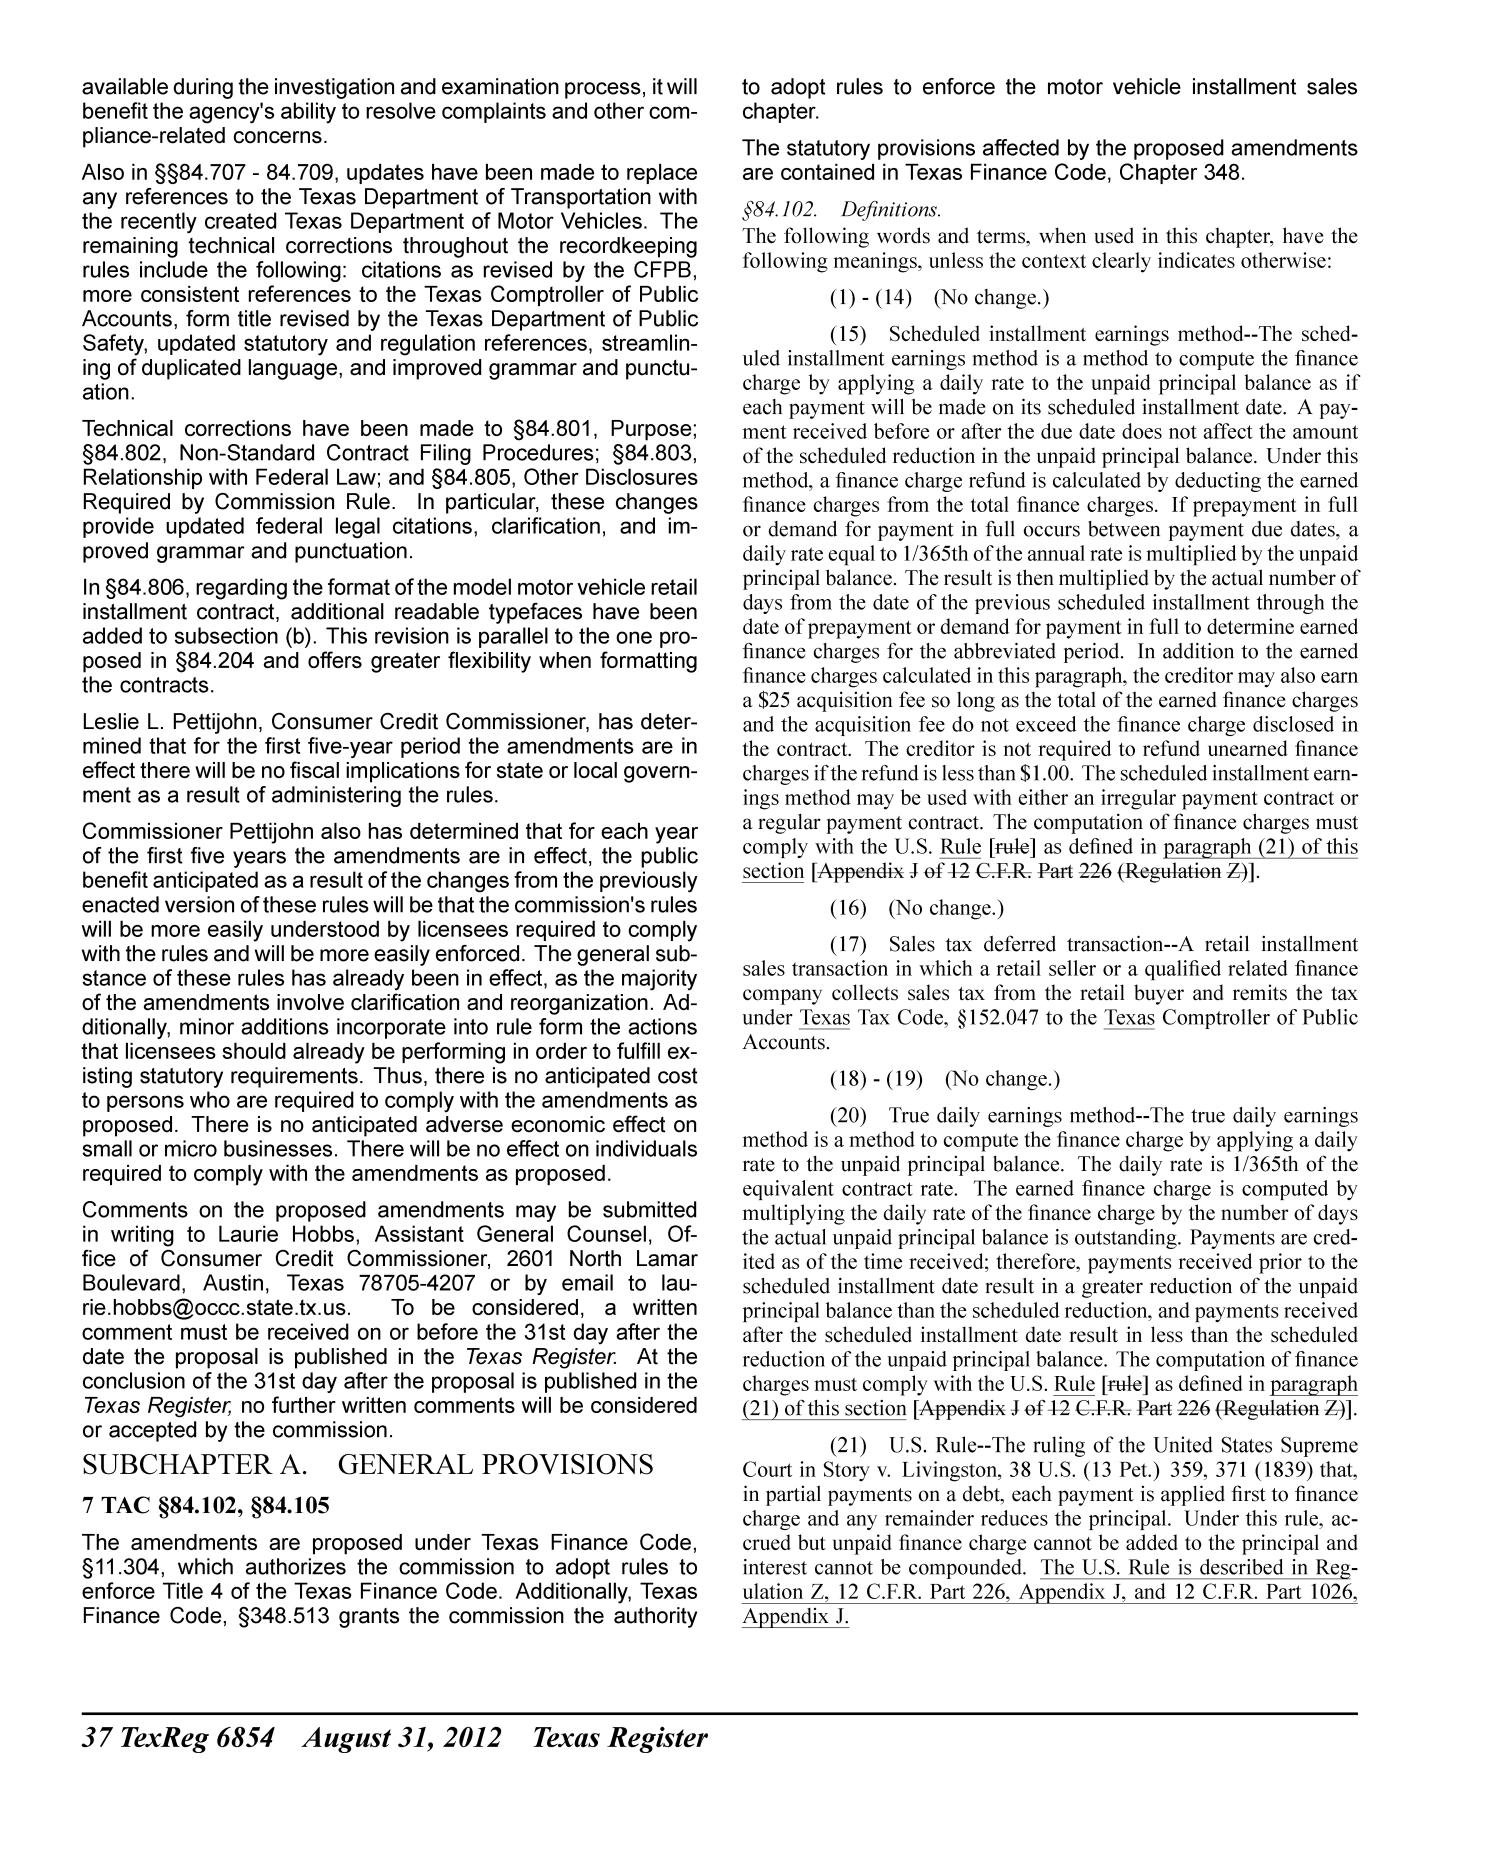 Texas Register, Volume 37, Number 35, Pages 6819-7008, August 31, 2012                                                                                                      6854